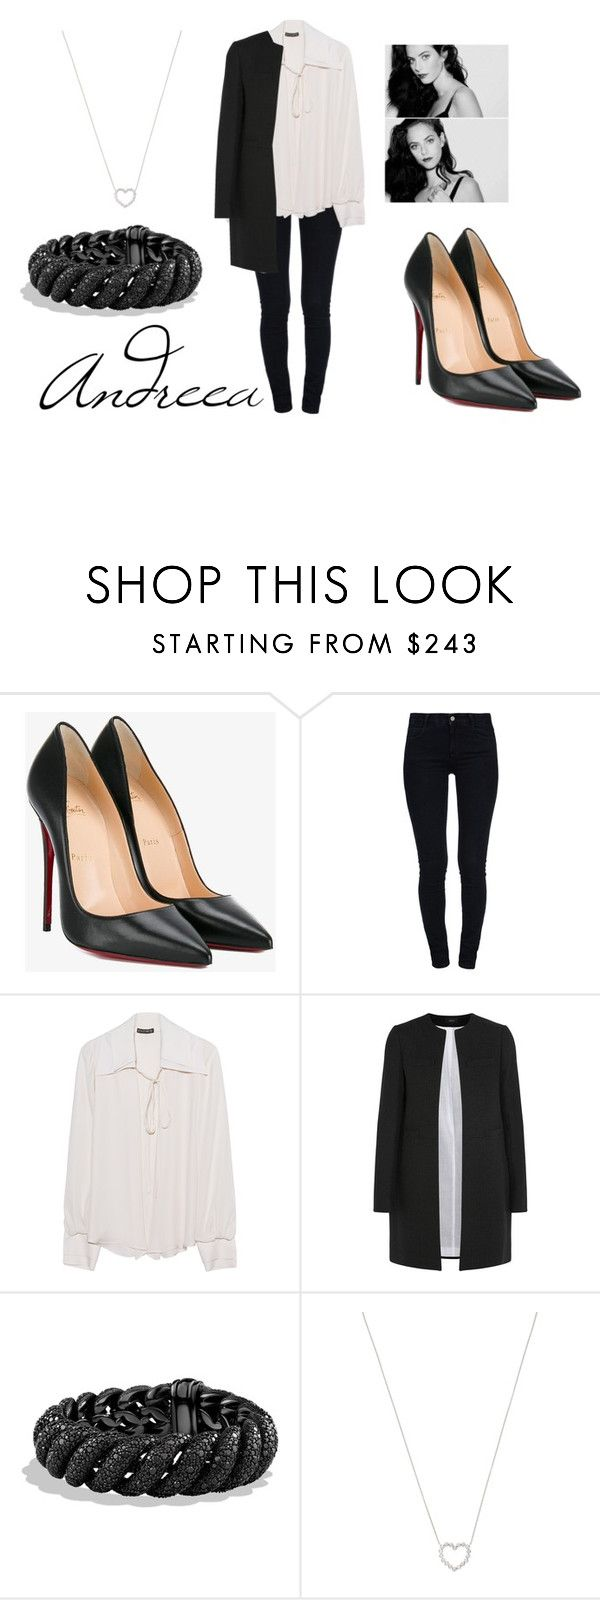 """Untitled #2082"" by andreea0 ❤ liked on Polyvore featuring Christian Louboutin, STELLA McCARTNEY, Plein Sud, Joseph, David Yurman and Tiffany & Co."